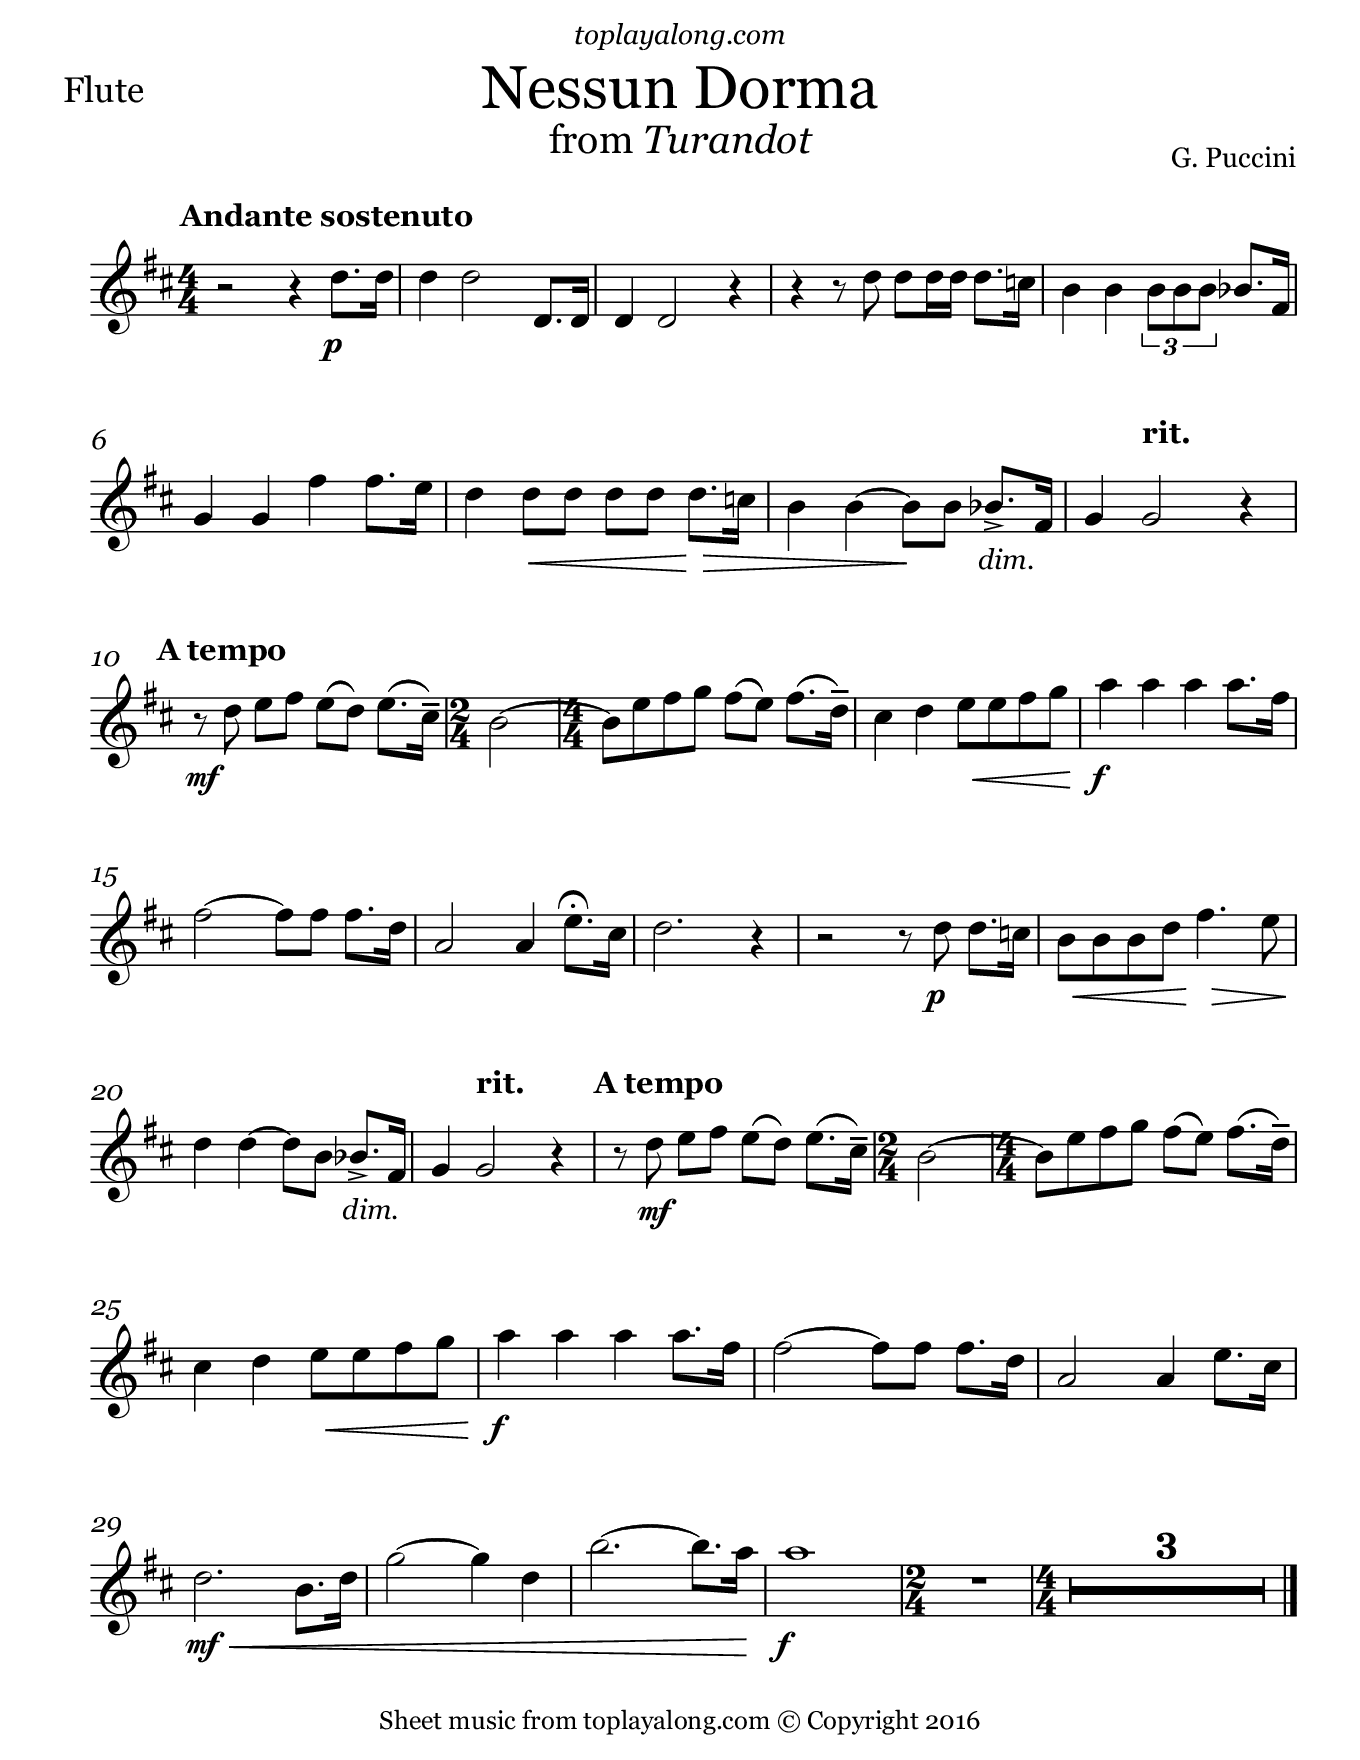 Nessun Dorma from Turandot by Puccini. Sheet music for Flute, page 1.